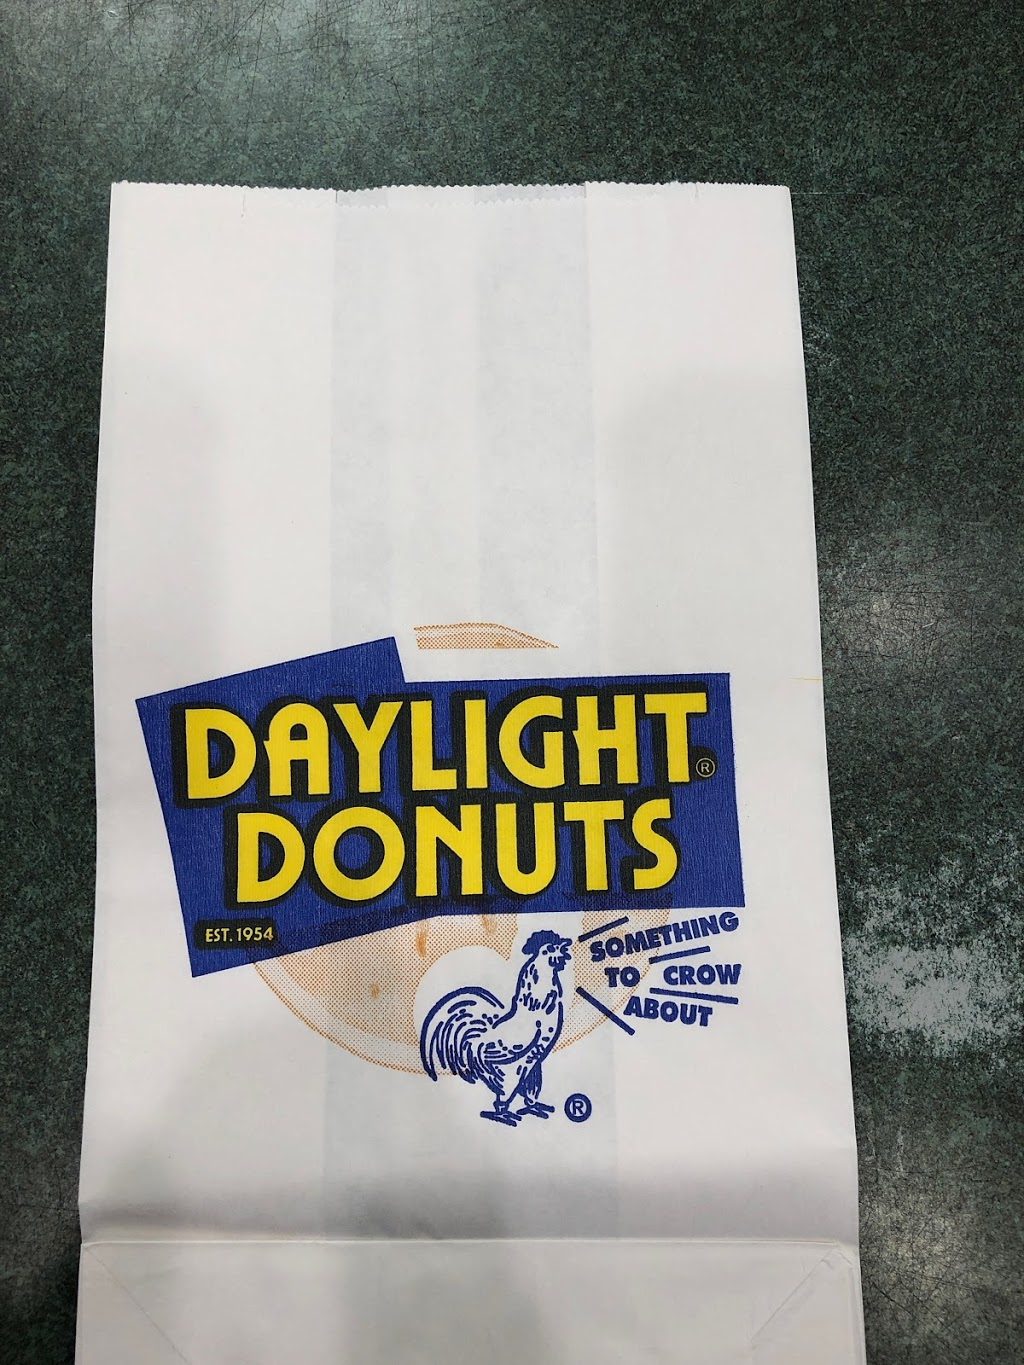 Daylight Donuts   bakery   108 Monticello Ave, Ruston, LA 71270, USA   3182550041 OR +1 318-255-0041